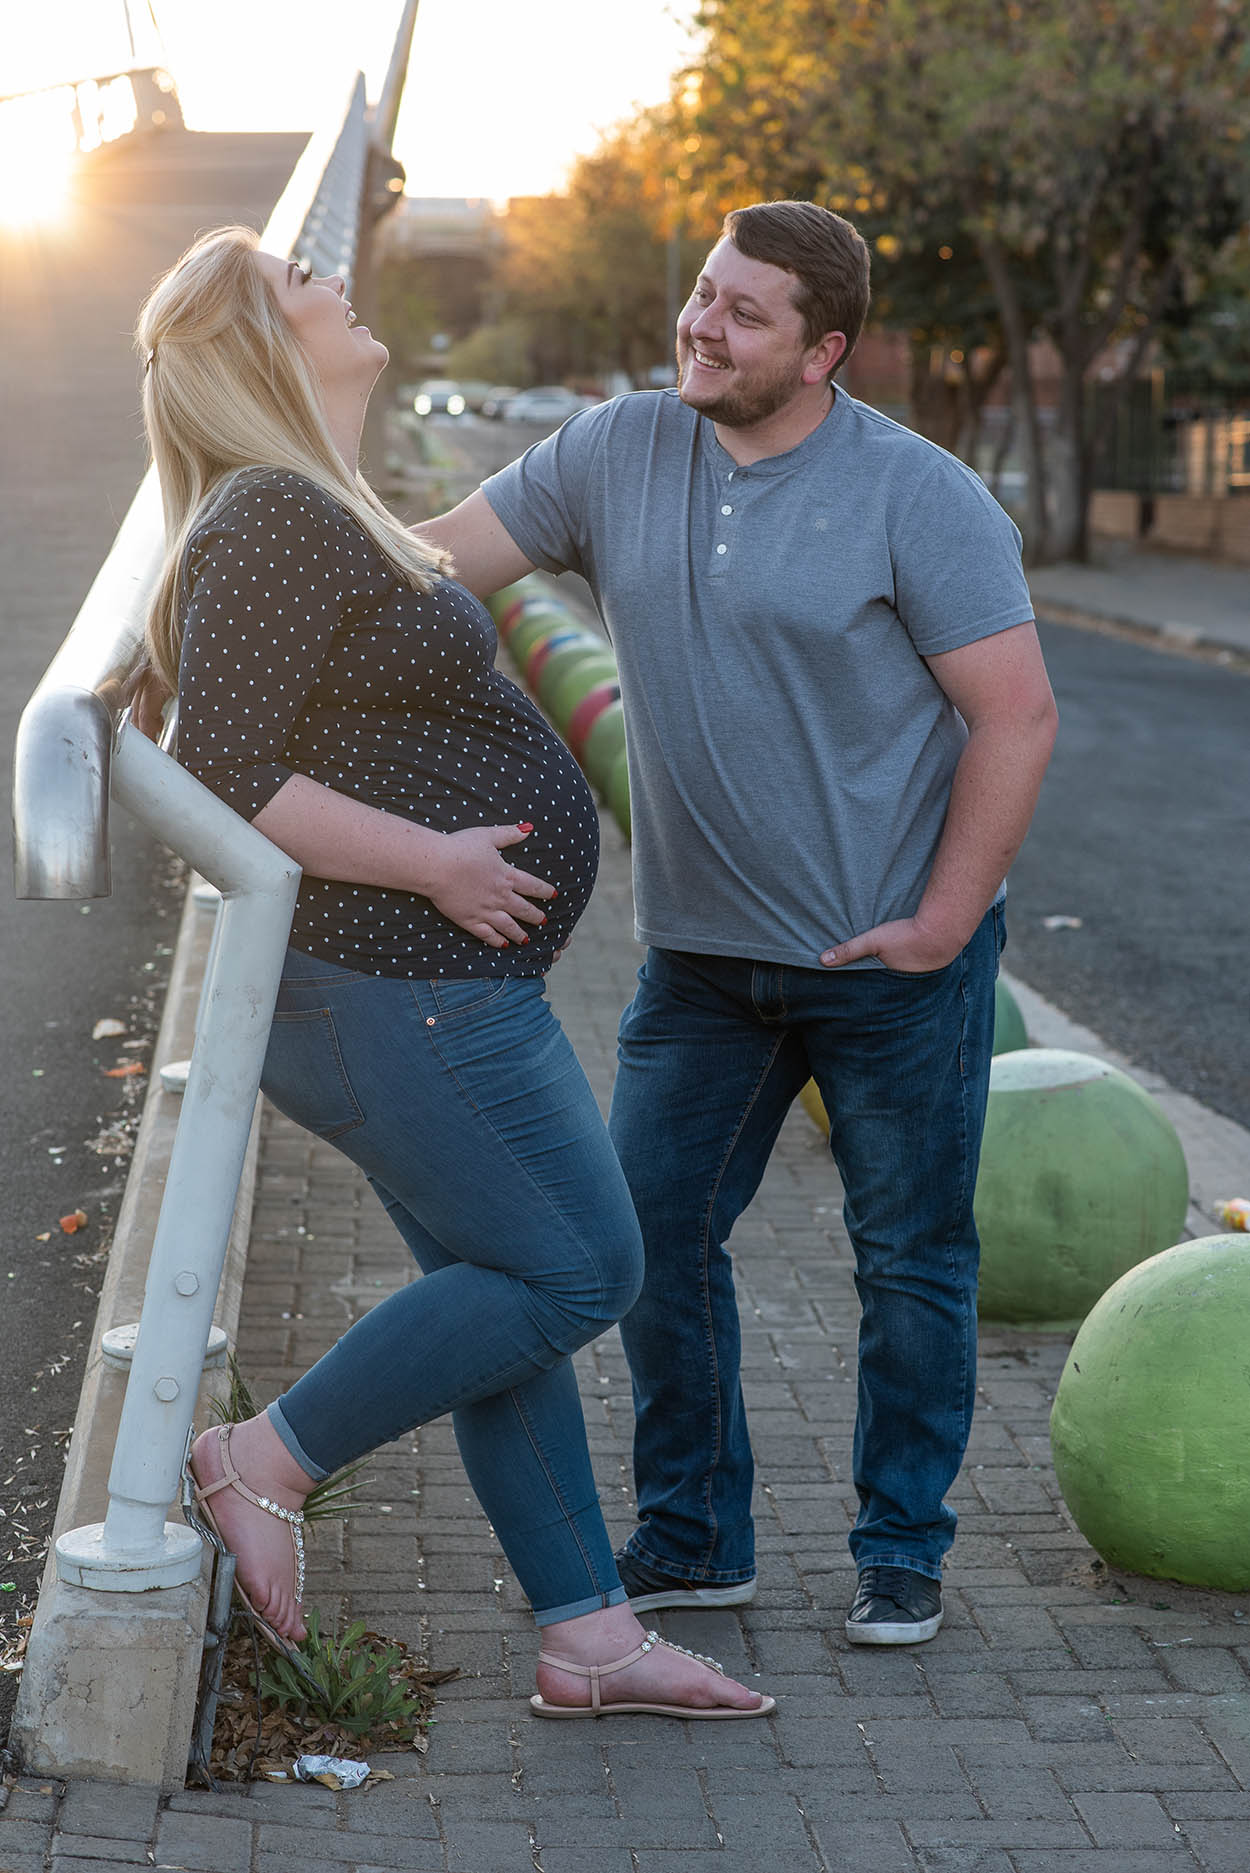 Maternity photos by Mudboots Photography couple wearing denim in Bloemfontein city urban